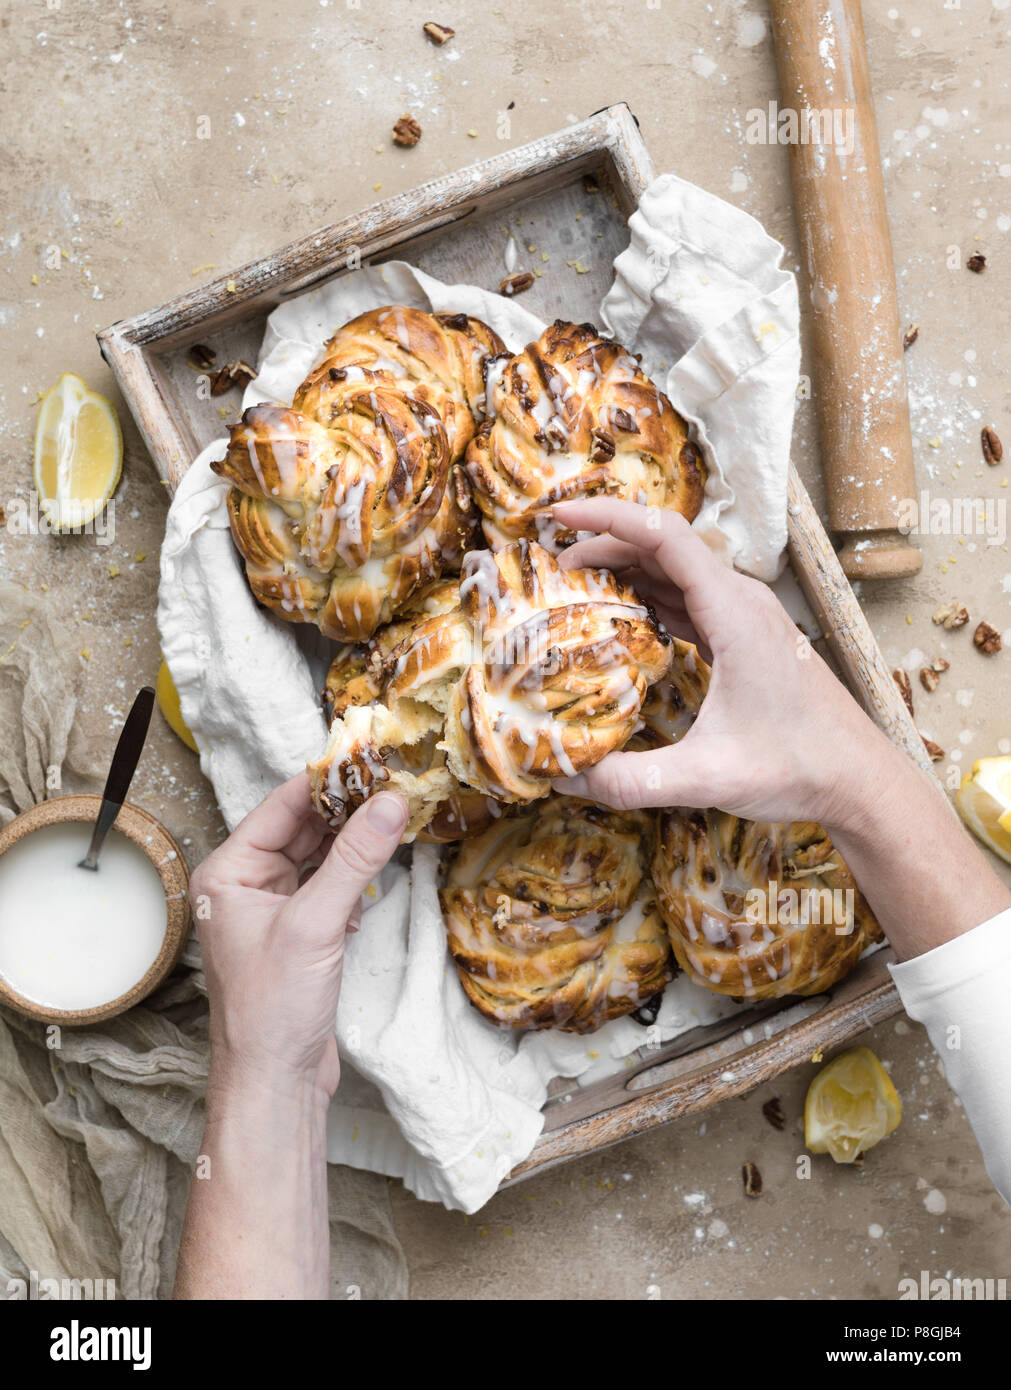 Lemon Pecan Sticky Buns made with lemon curd and chopped pecans. - Stock Image